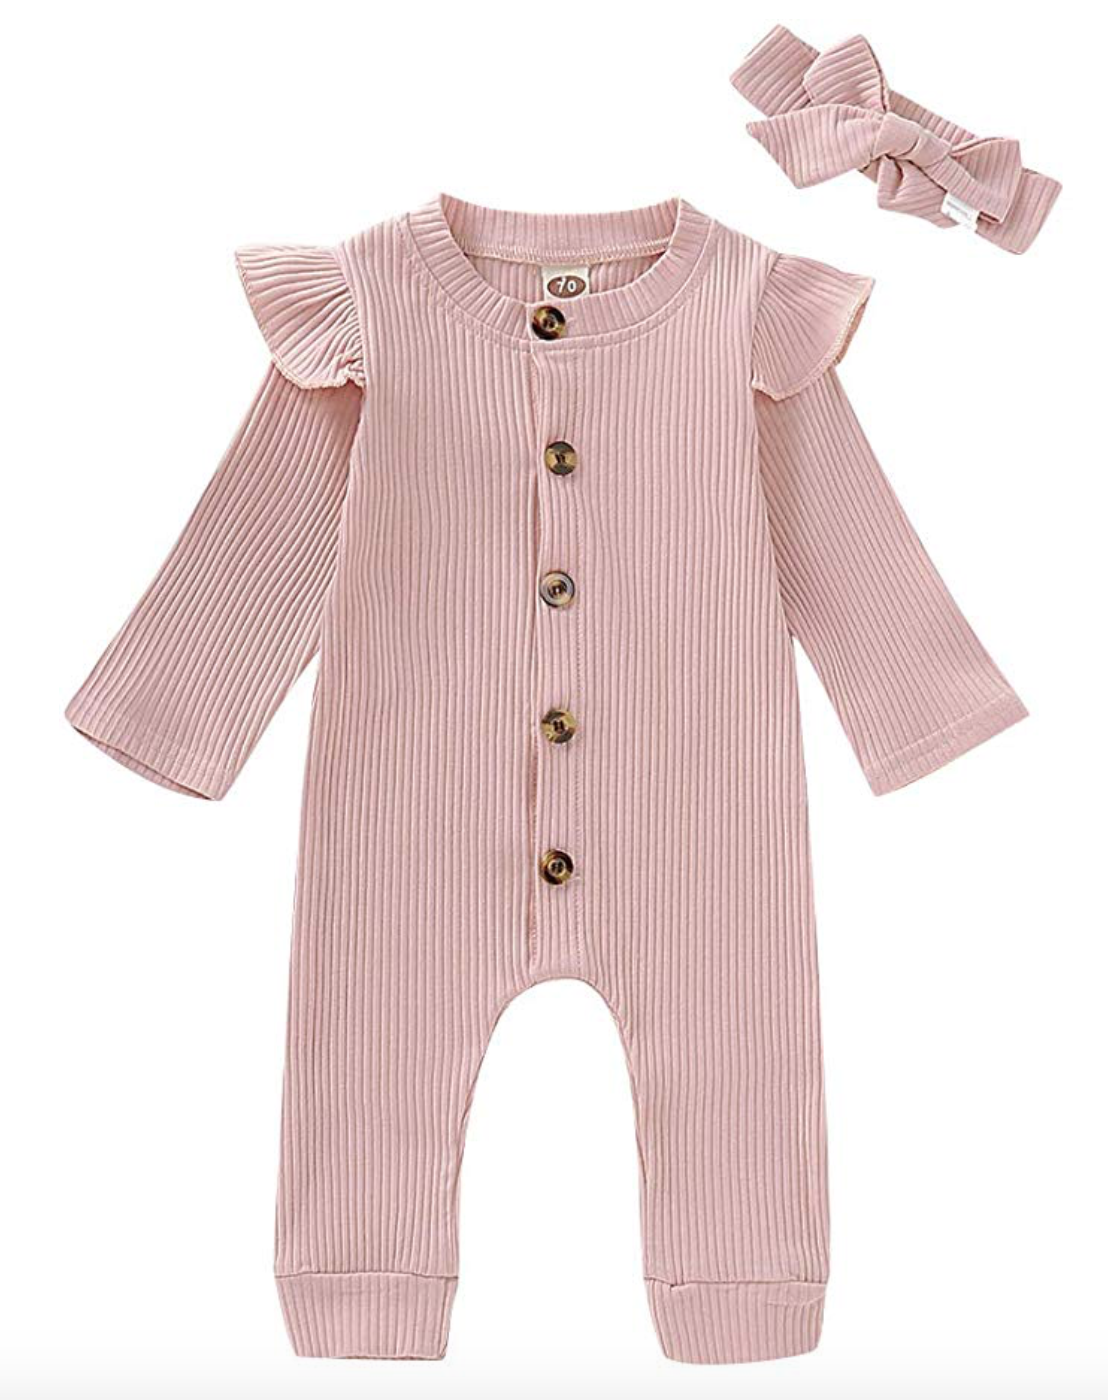 Newborn Baby Girl Jumpsuit Cotton Linen Solid Romper Short Sleeve One-Piece Bodysuit